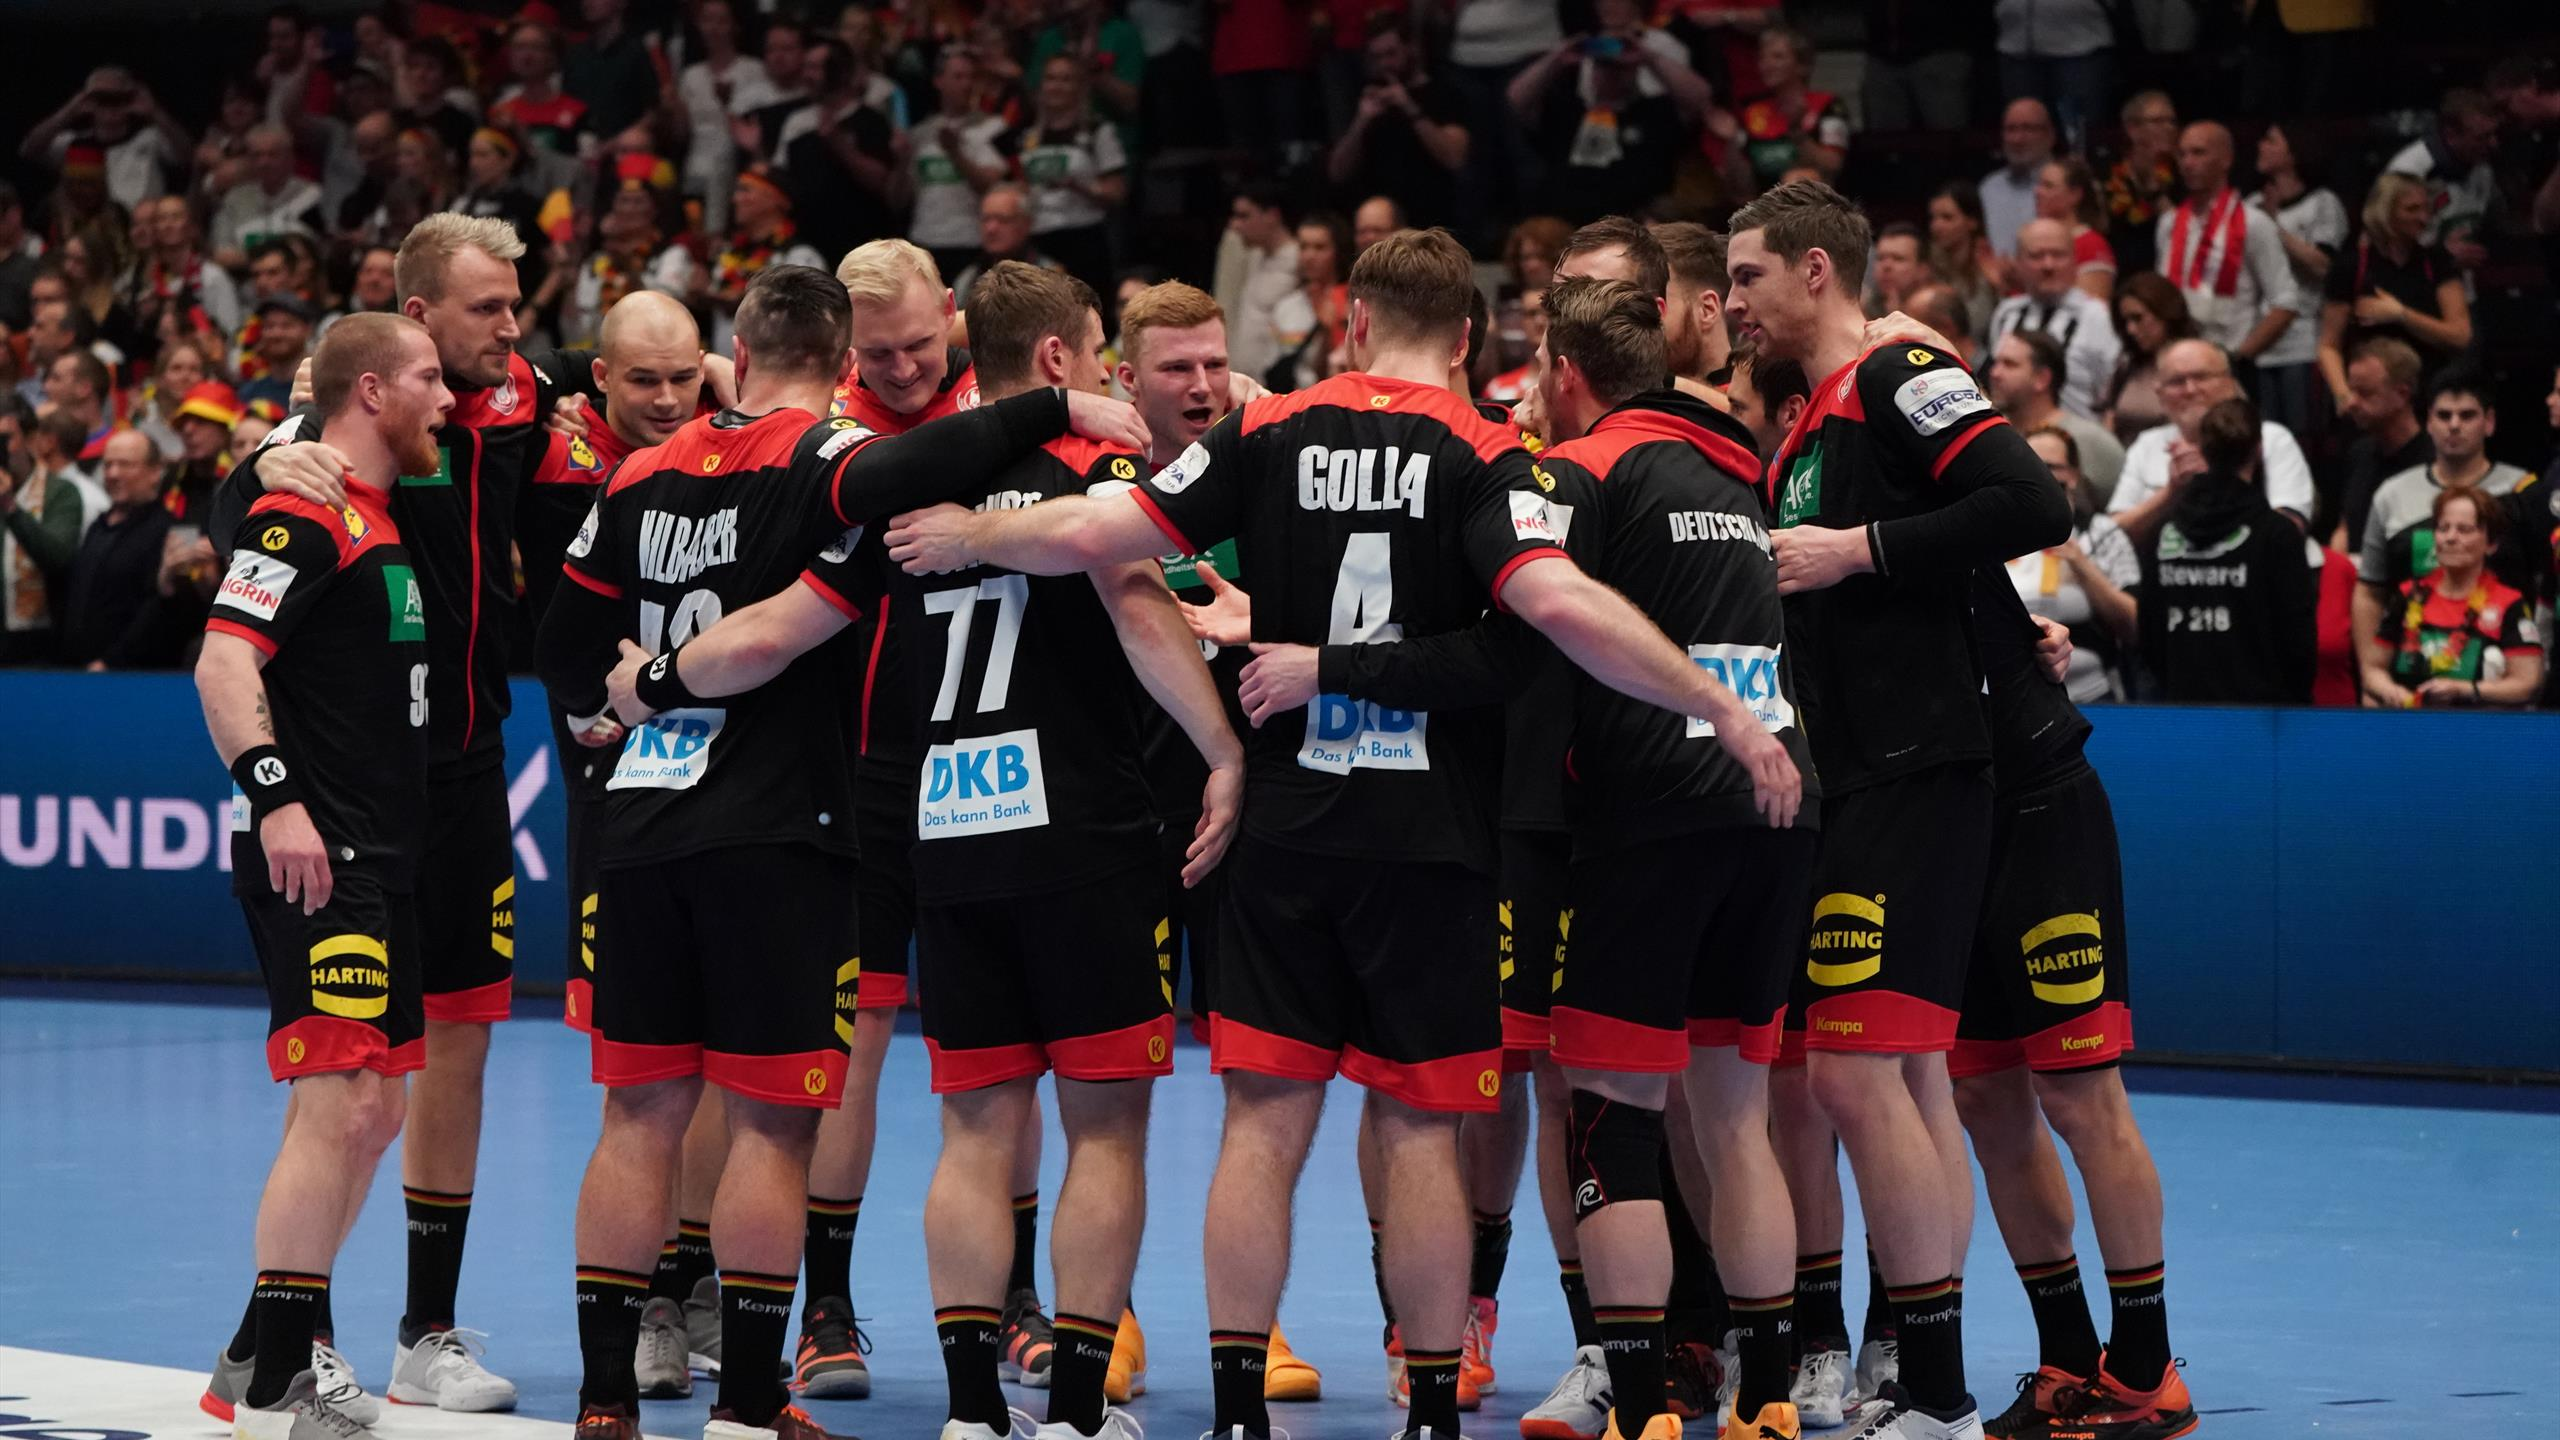 olympia qualifikation der handball